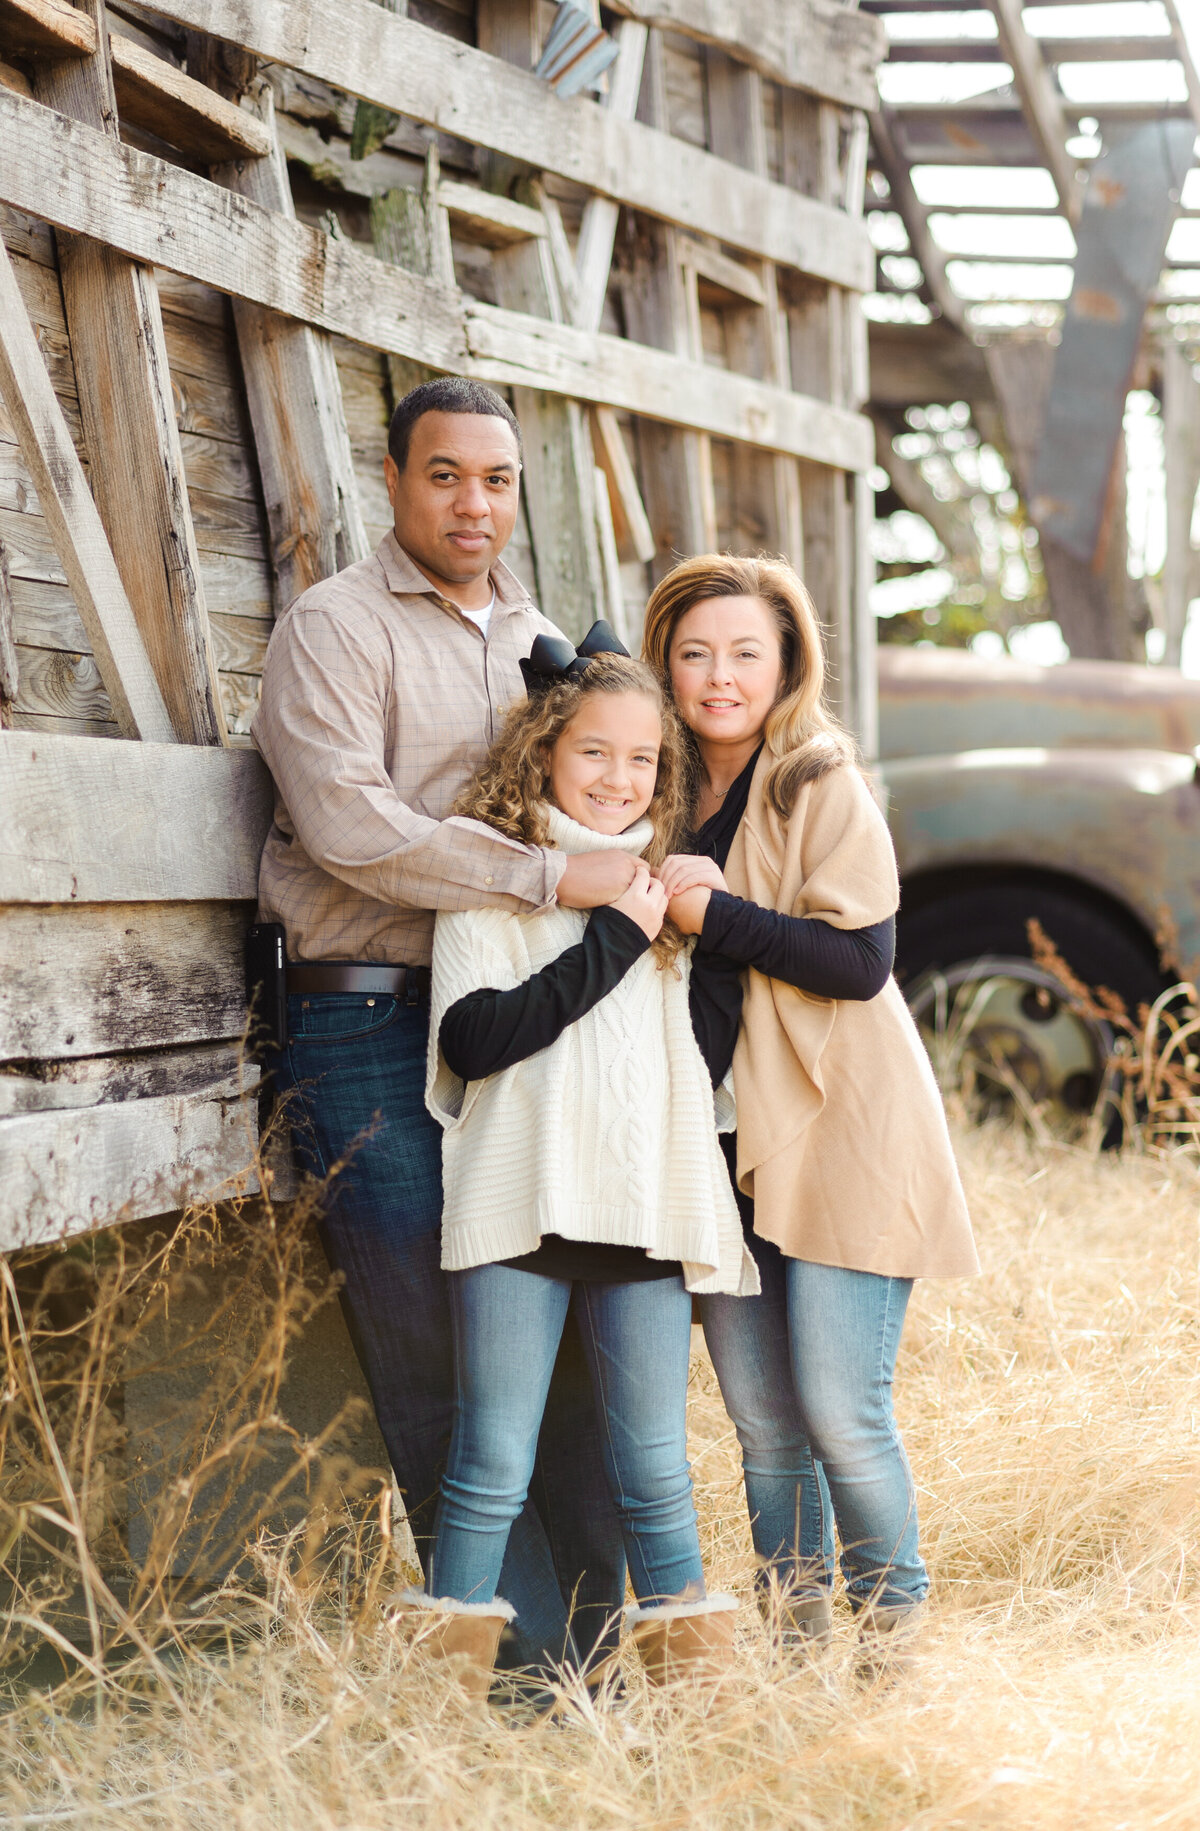 family-photographer-virginia-beach-tonya-volk-photography-6